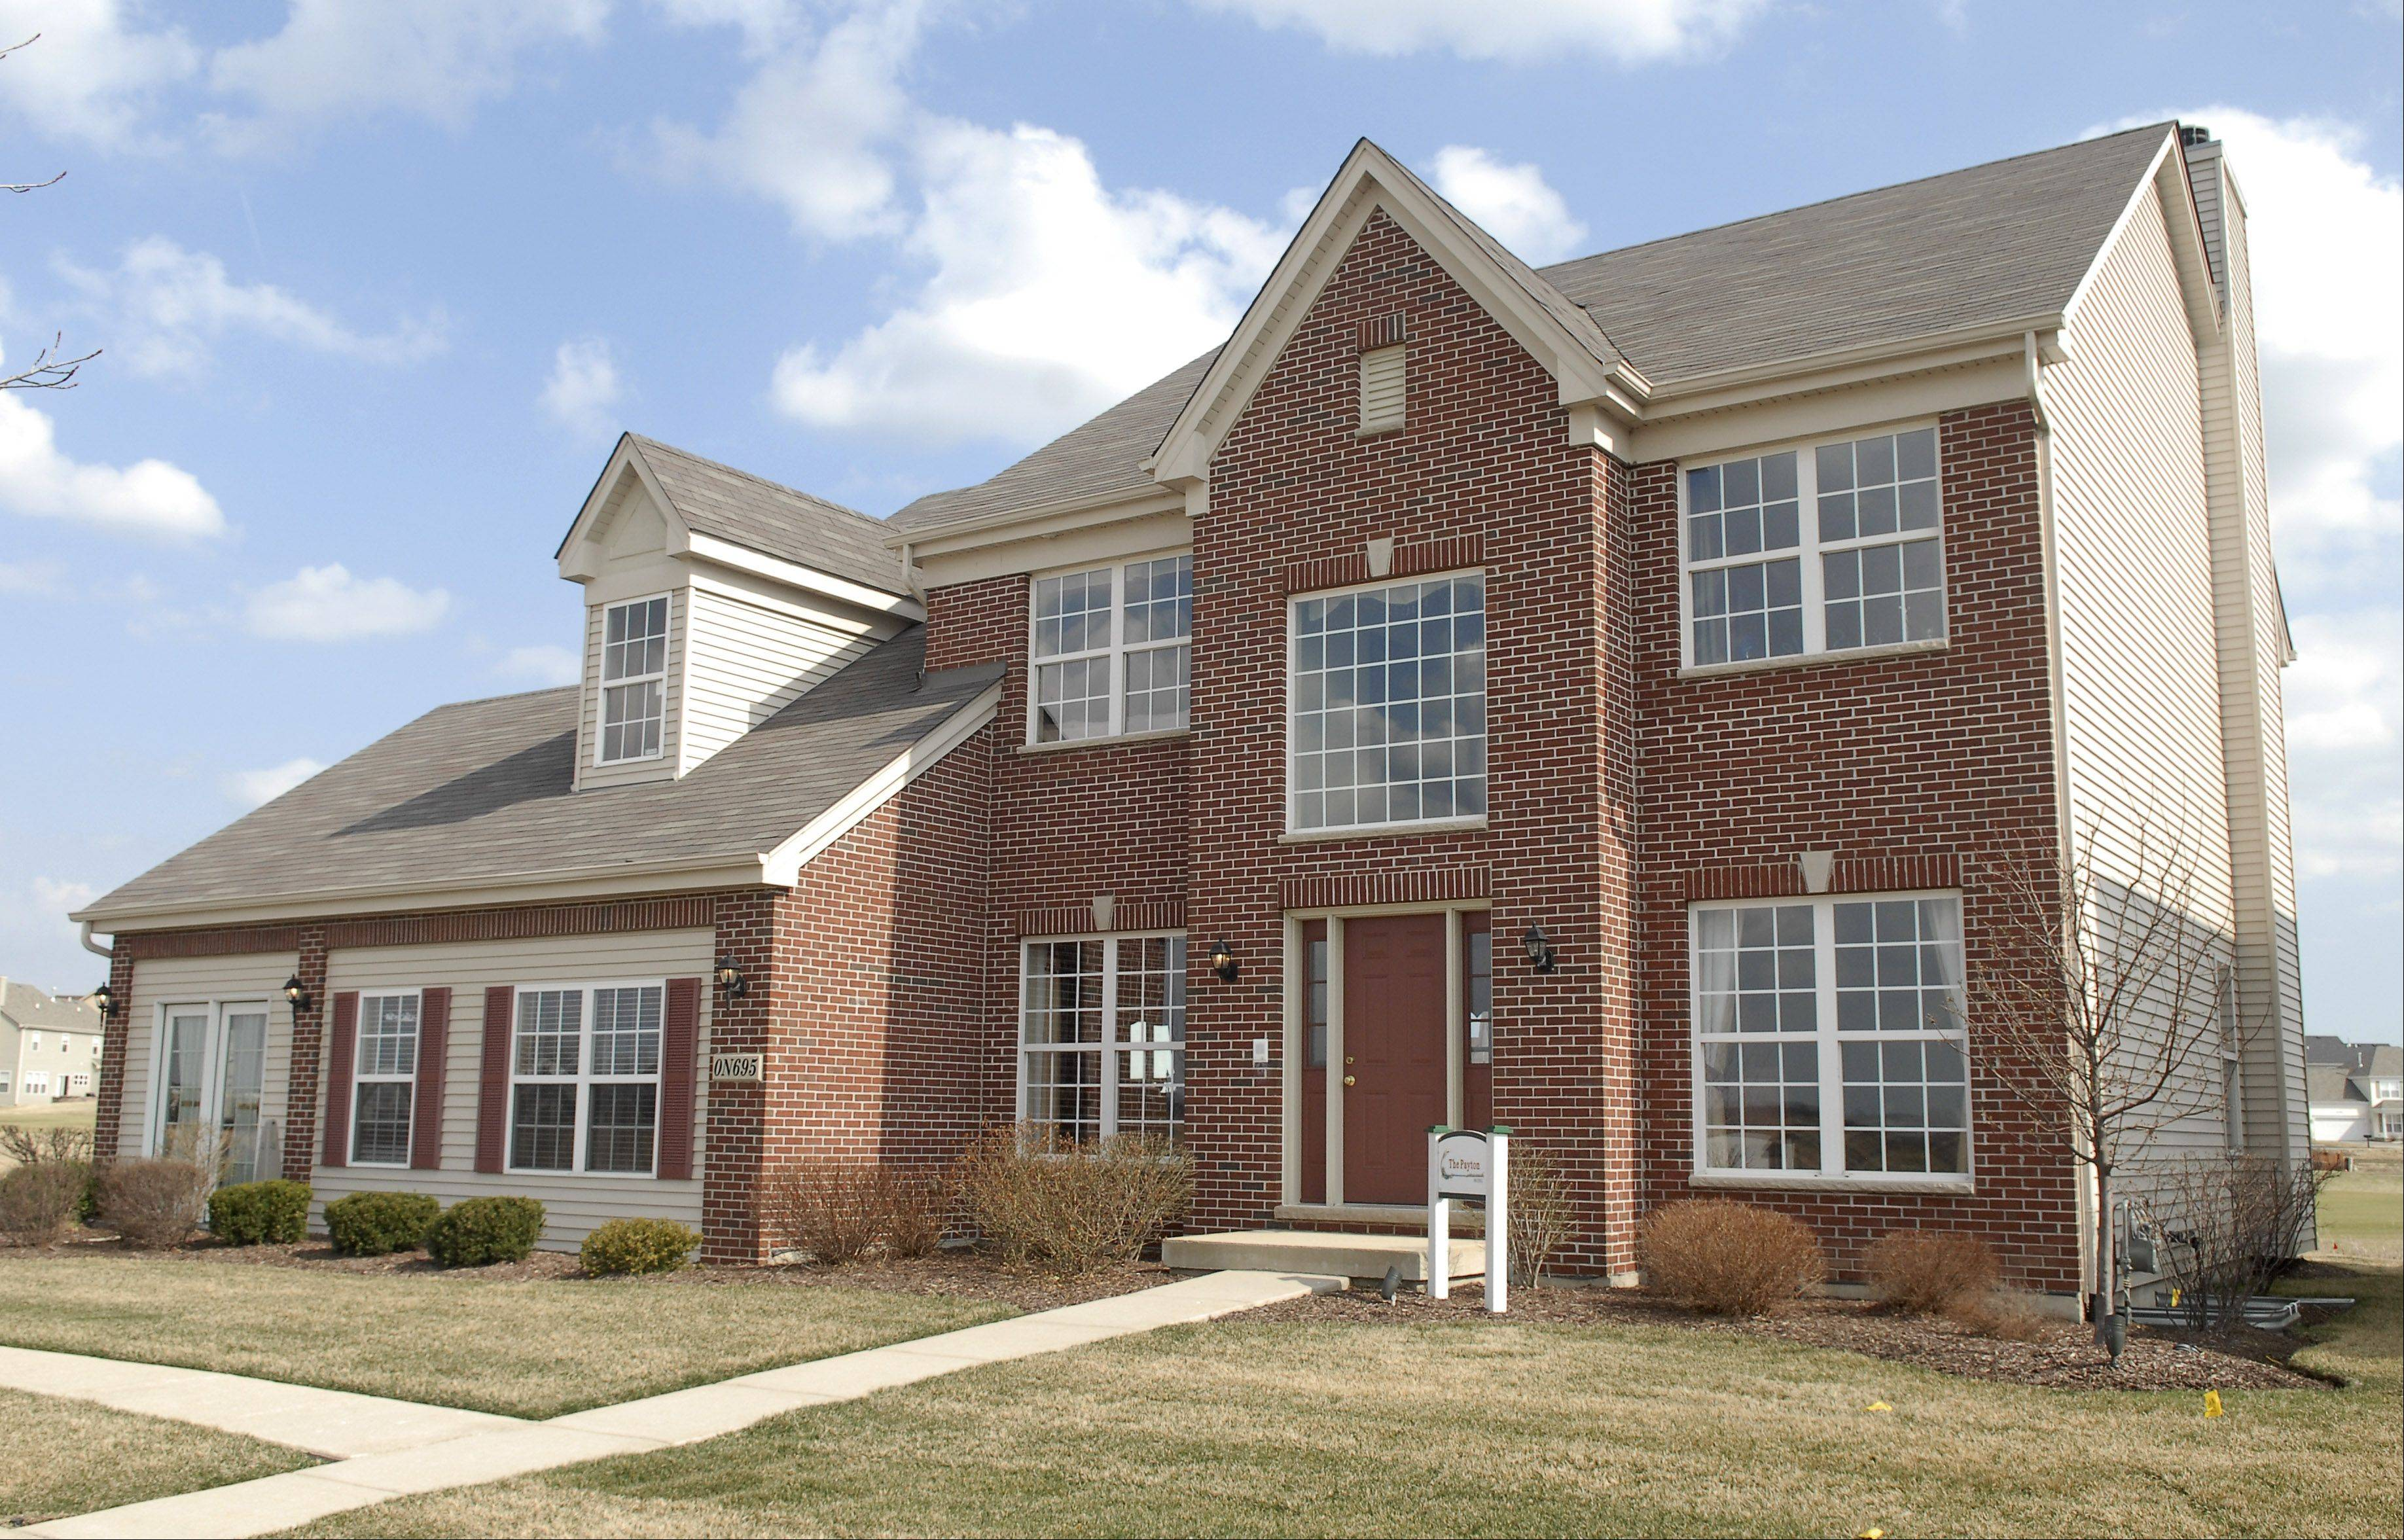 Incentives such as half off options are offered by Shodeen Homes at it's Tanna neighborhood at Mill Creek in Geneva.